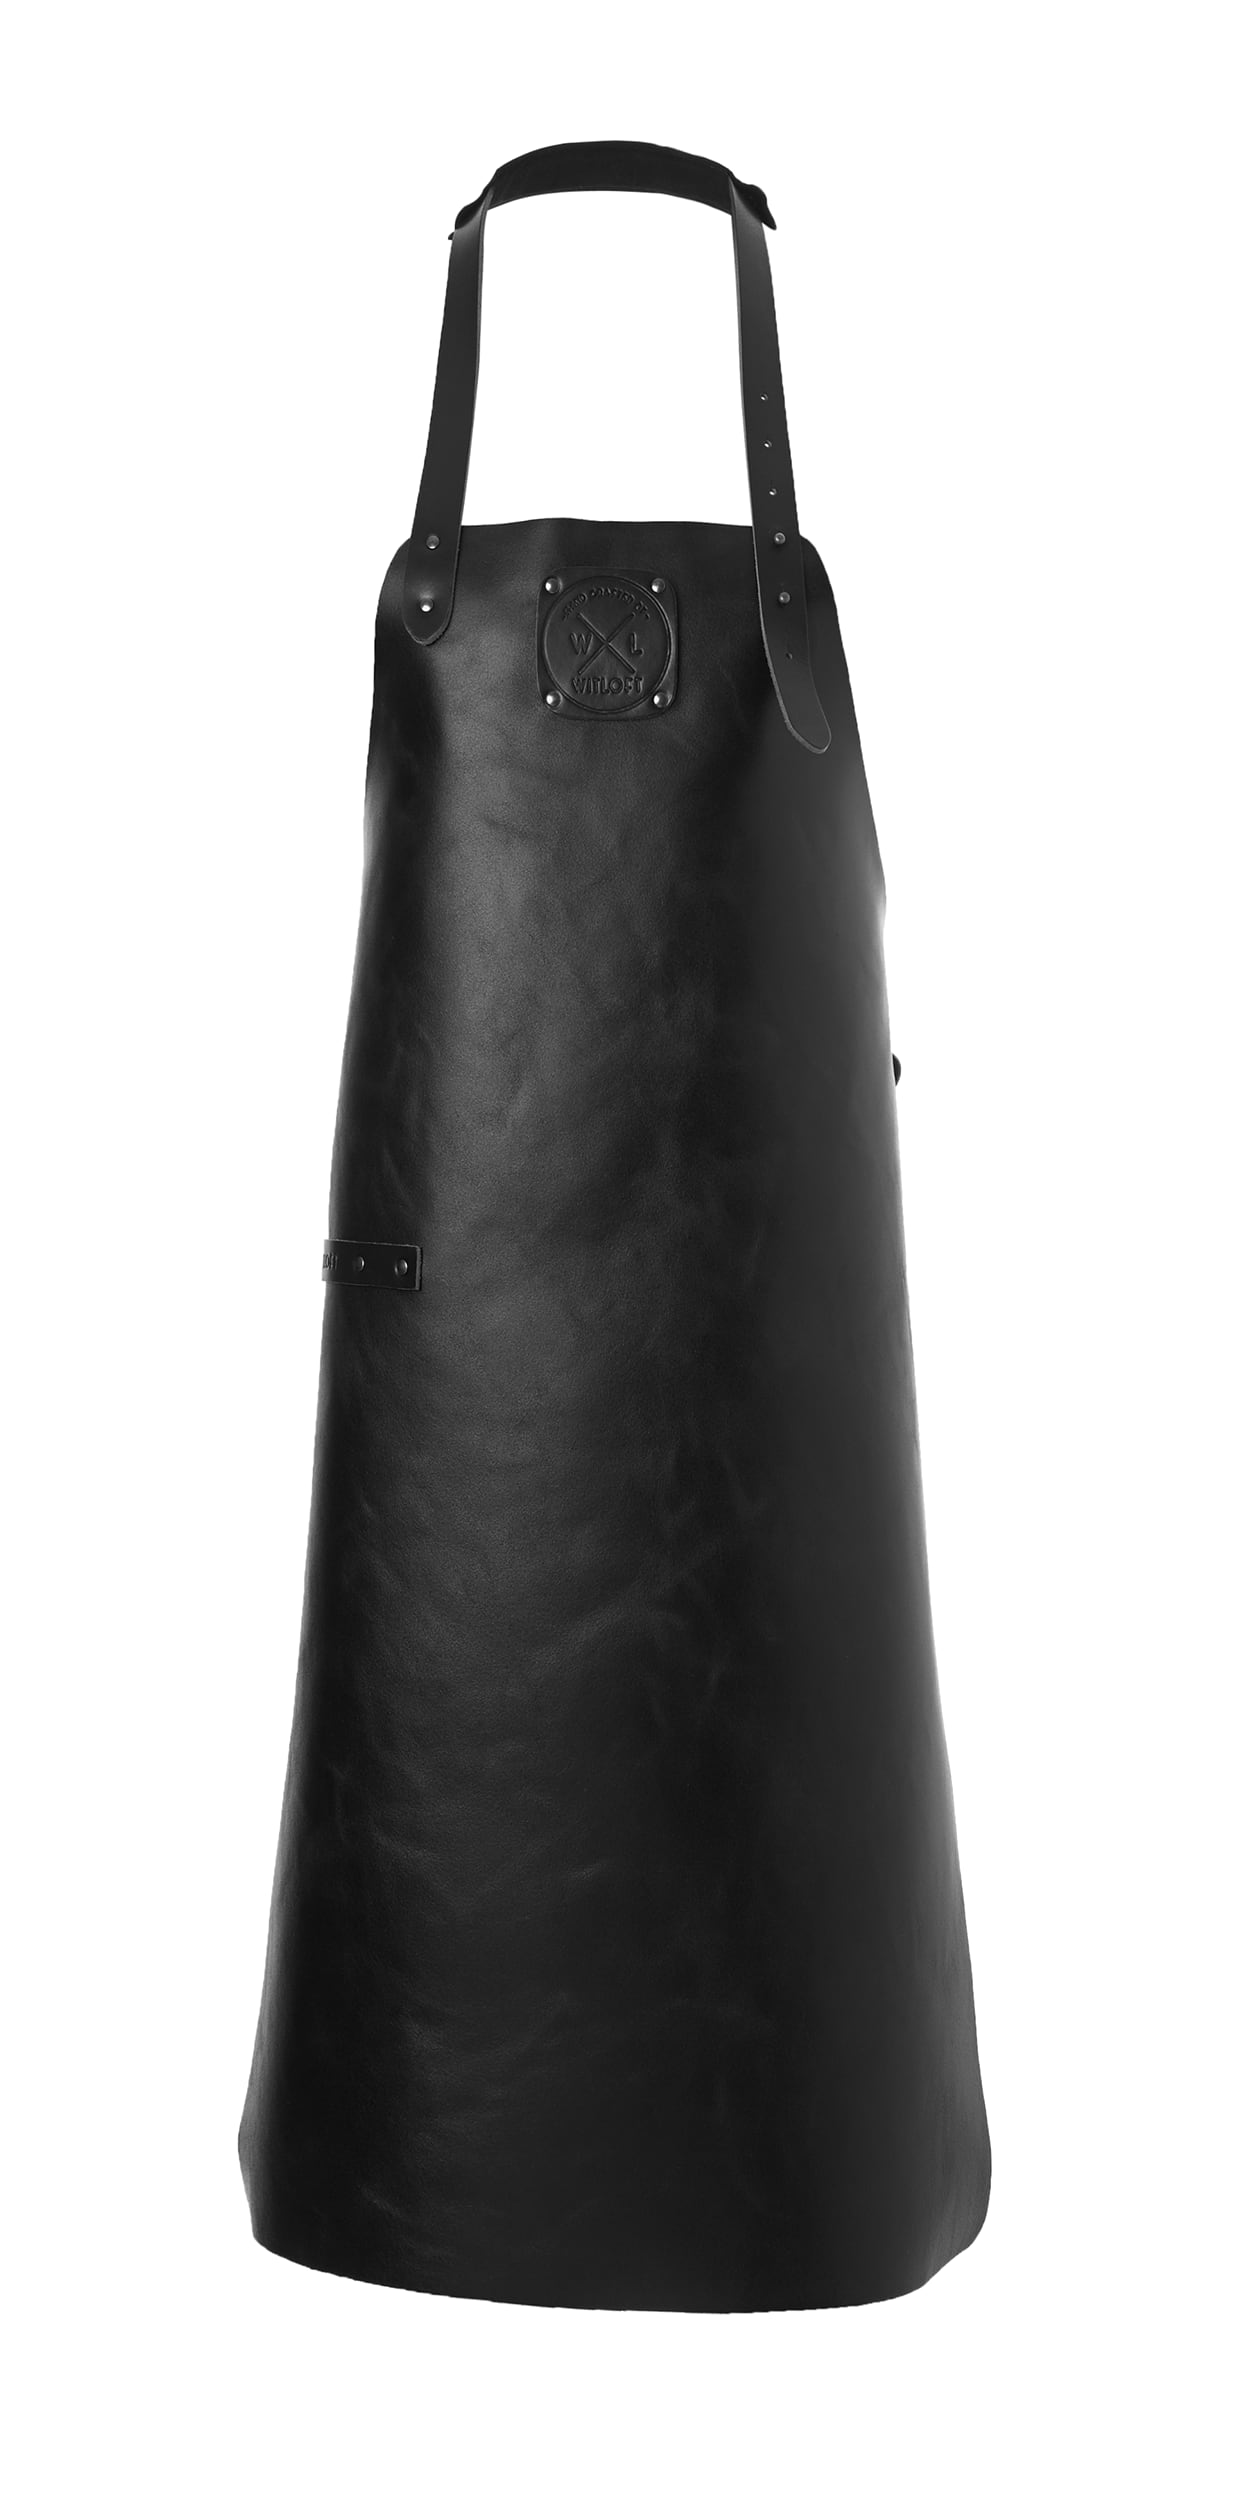 Witloft Regular Leather Apron